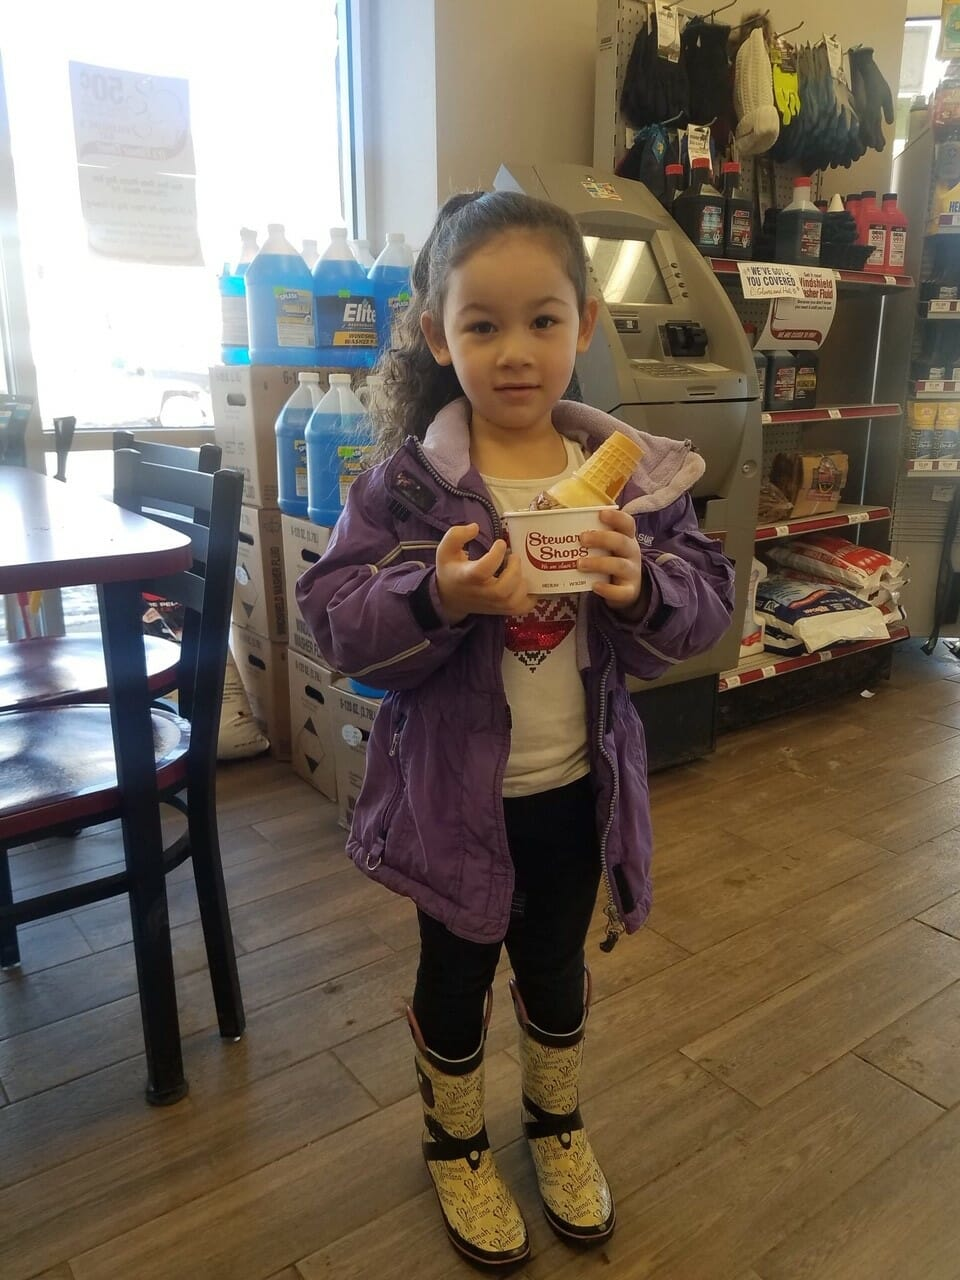 A little girl in a purple coat holding ice cream